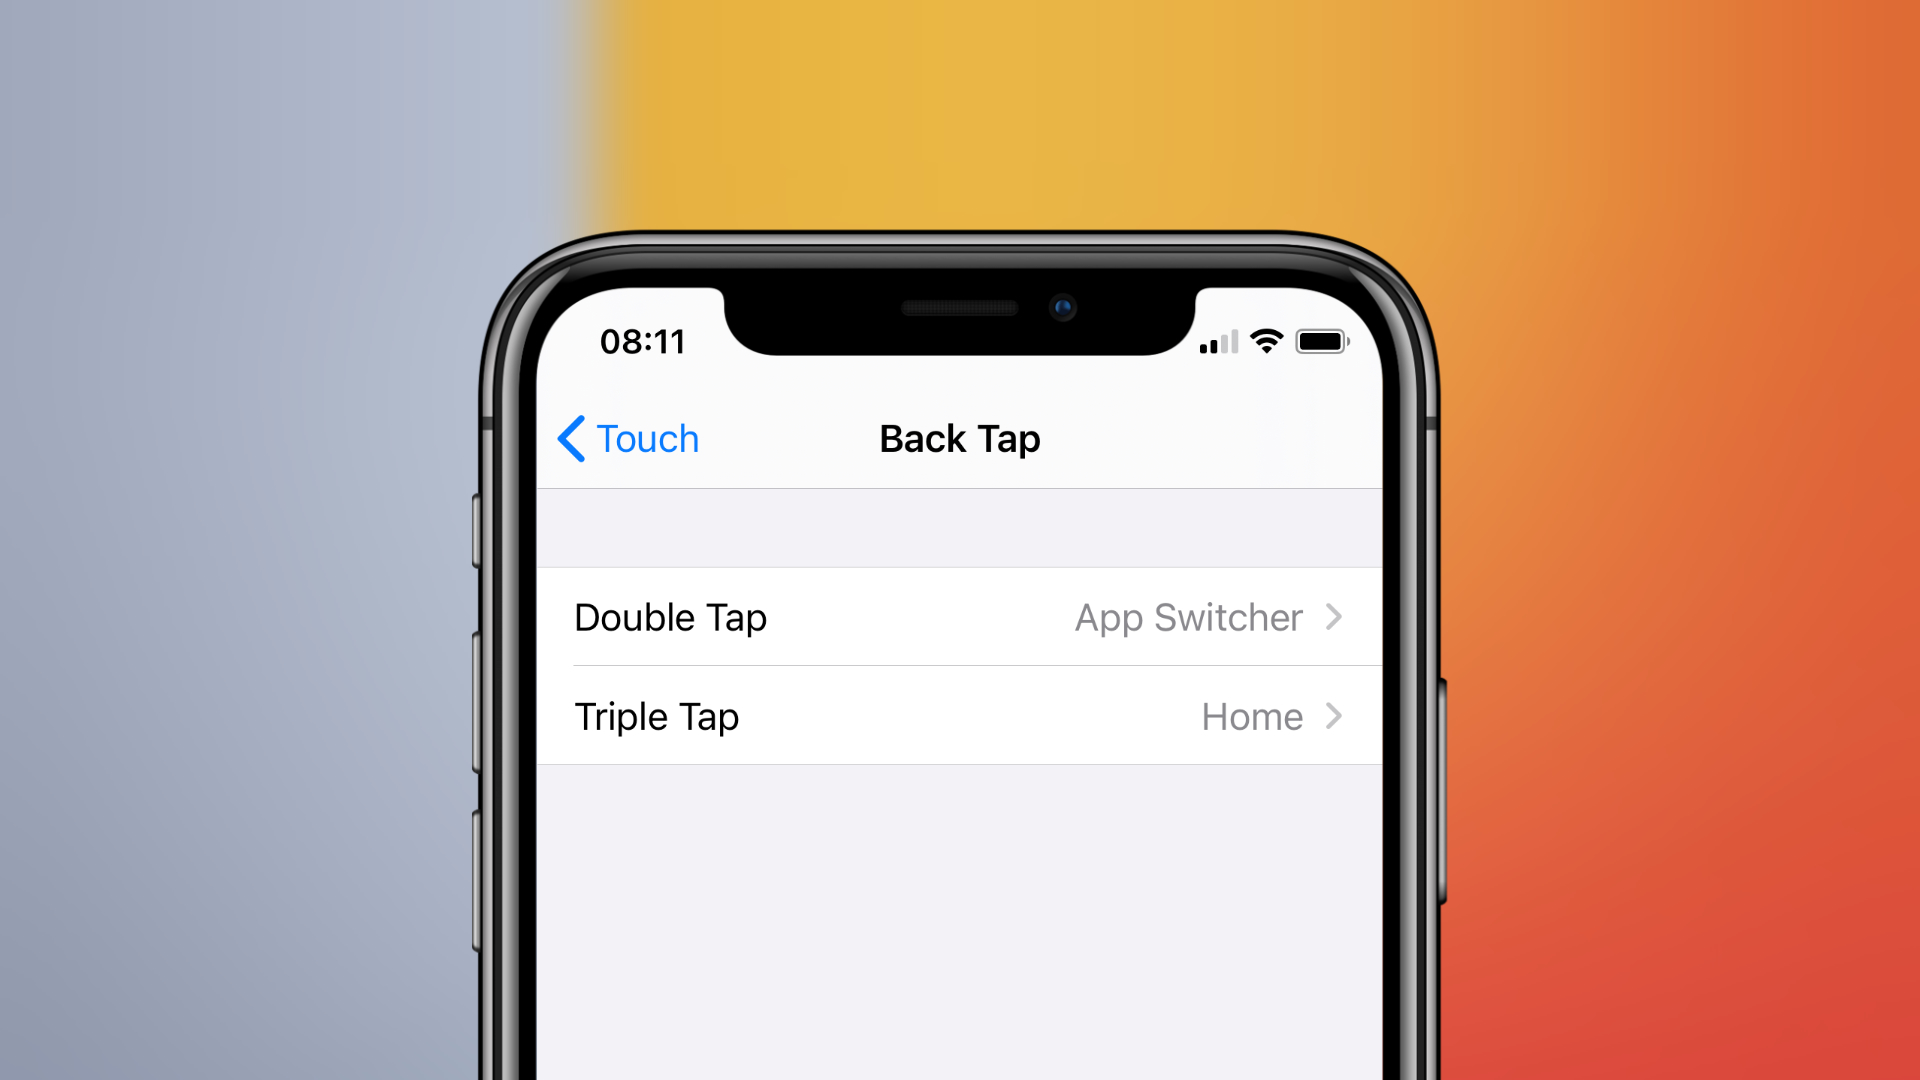 Back Tap settings in iOS 14